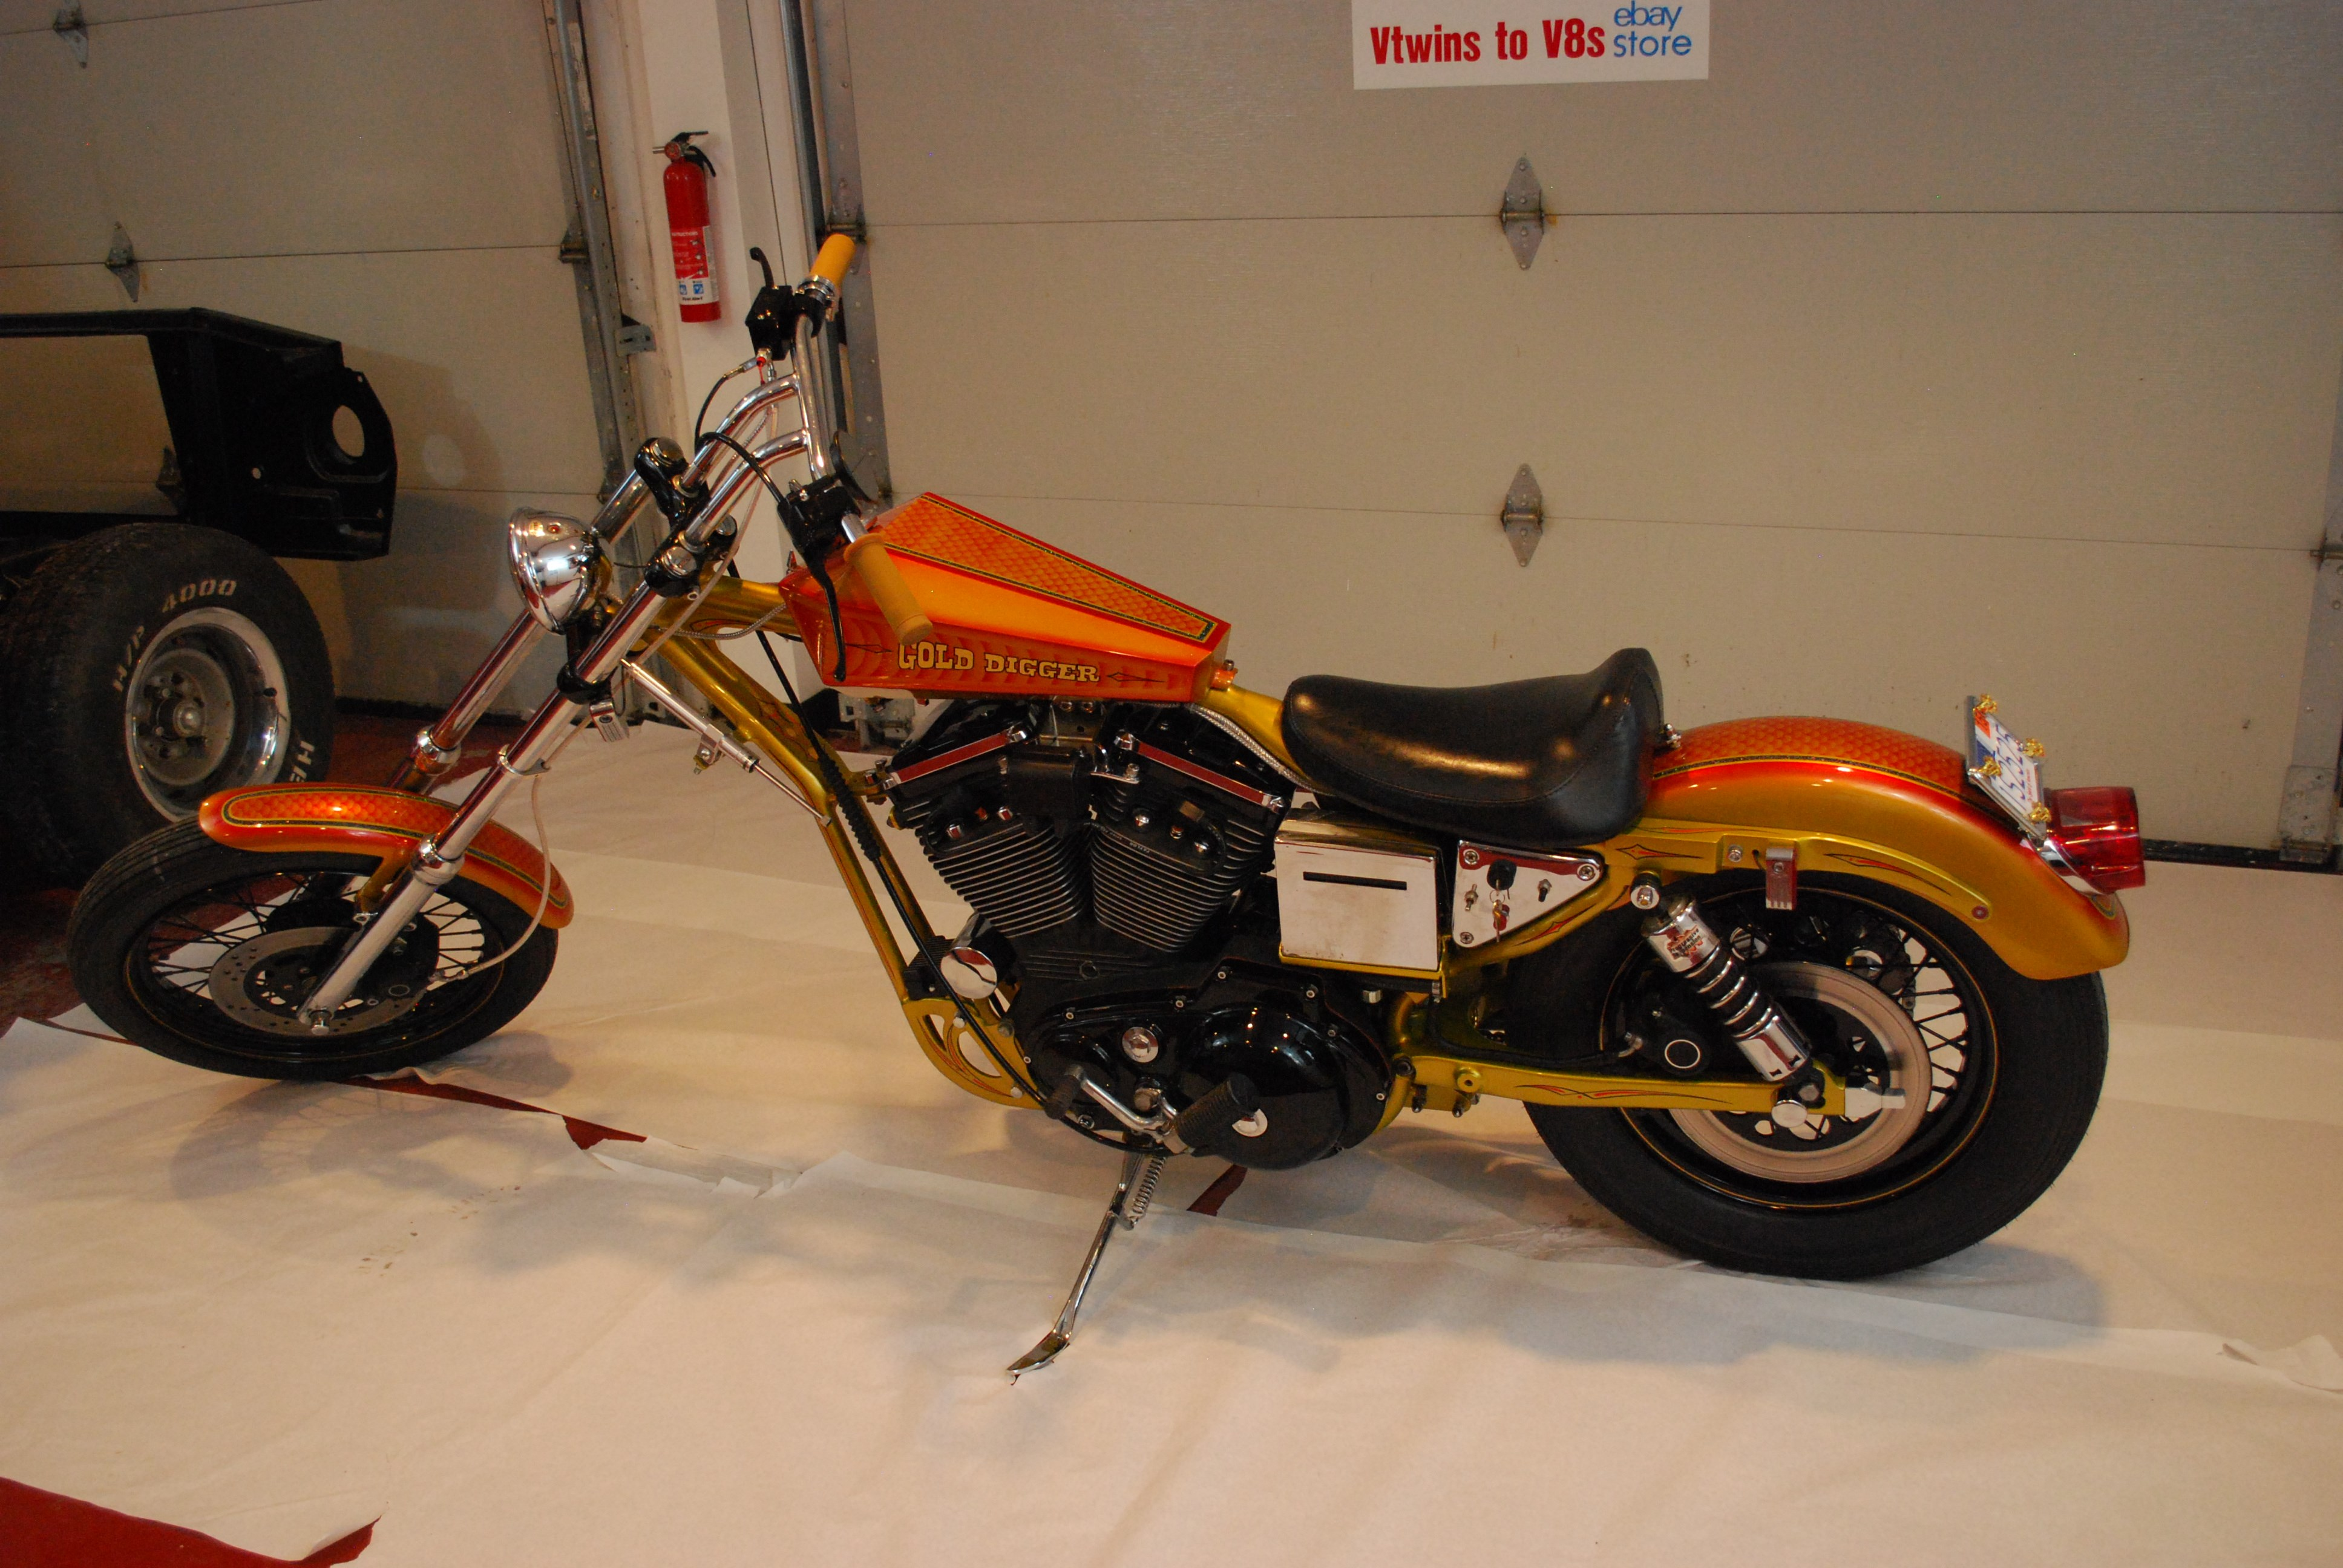 Motorcycle Dealers In Ma >> 1989 Harley-Davidson® XLH-1200 Sportster® 1200 (Gold & Red ...